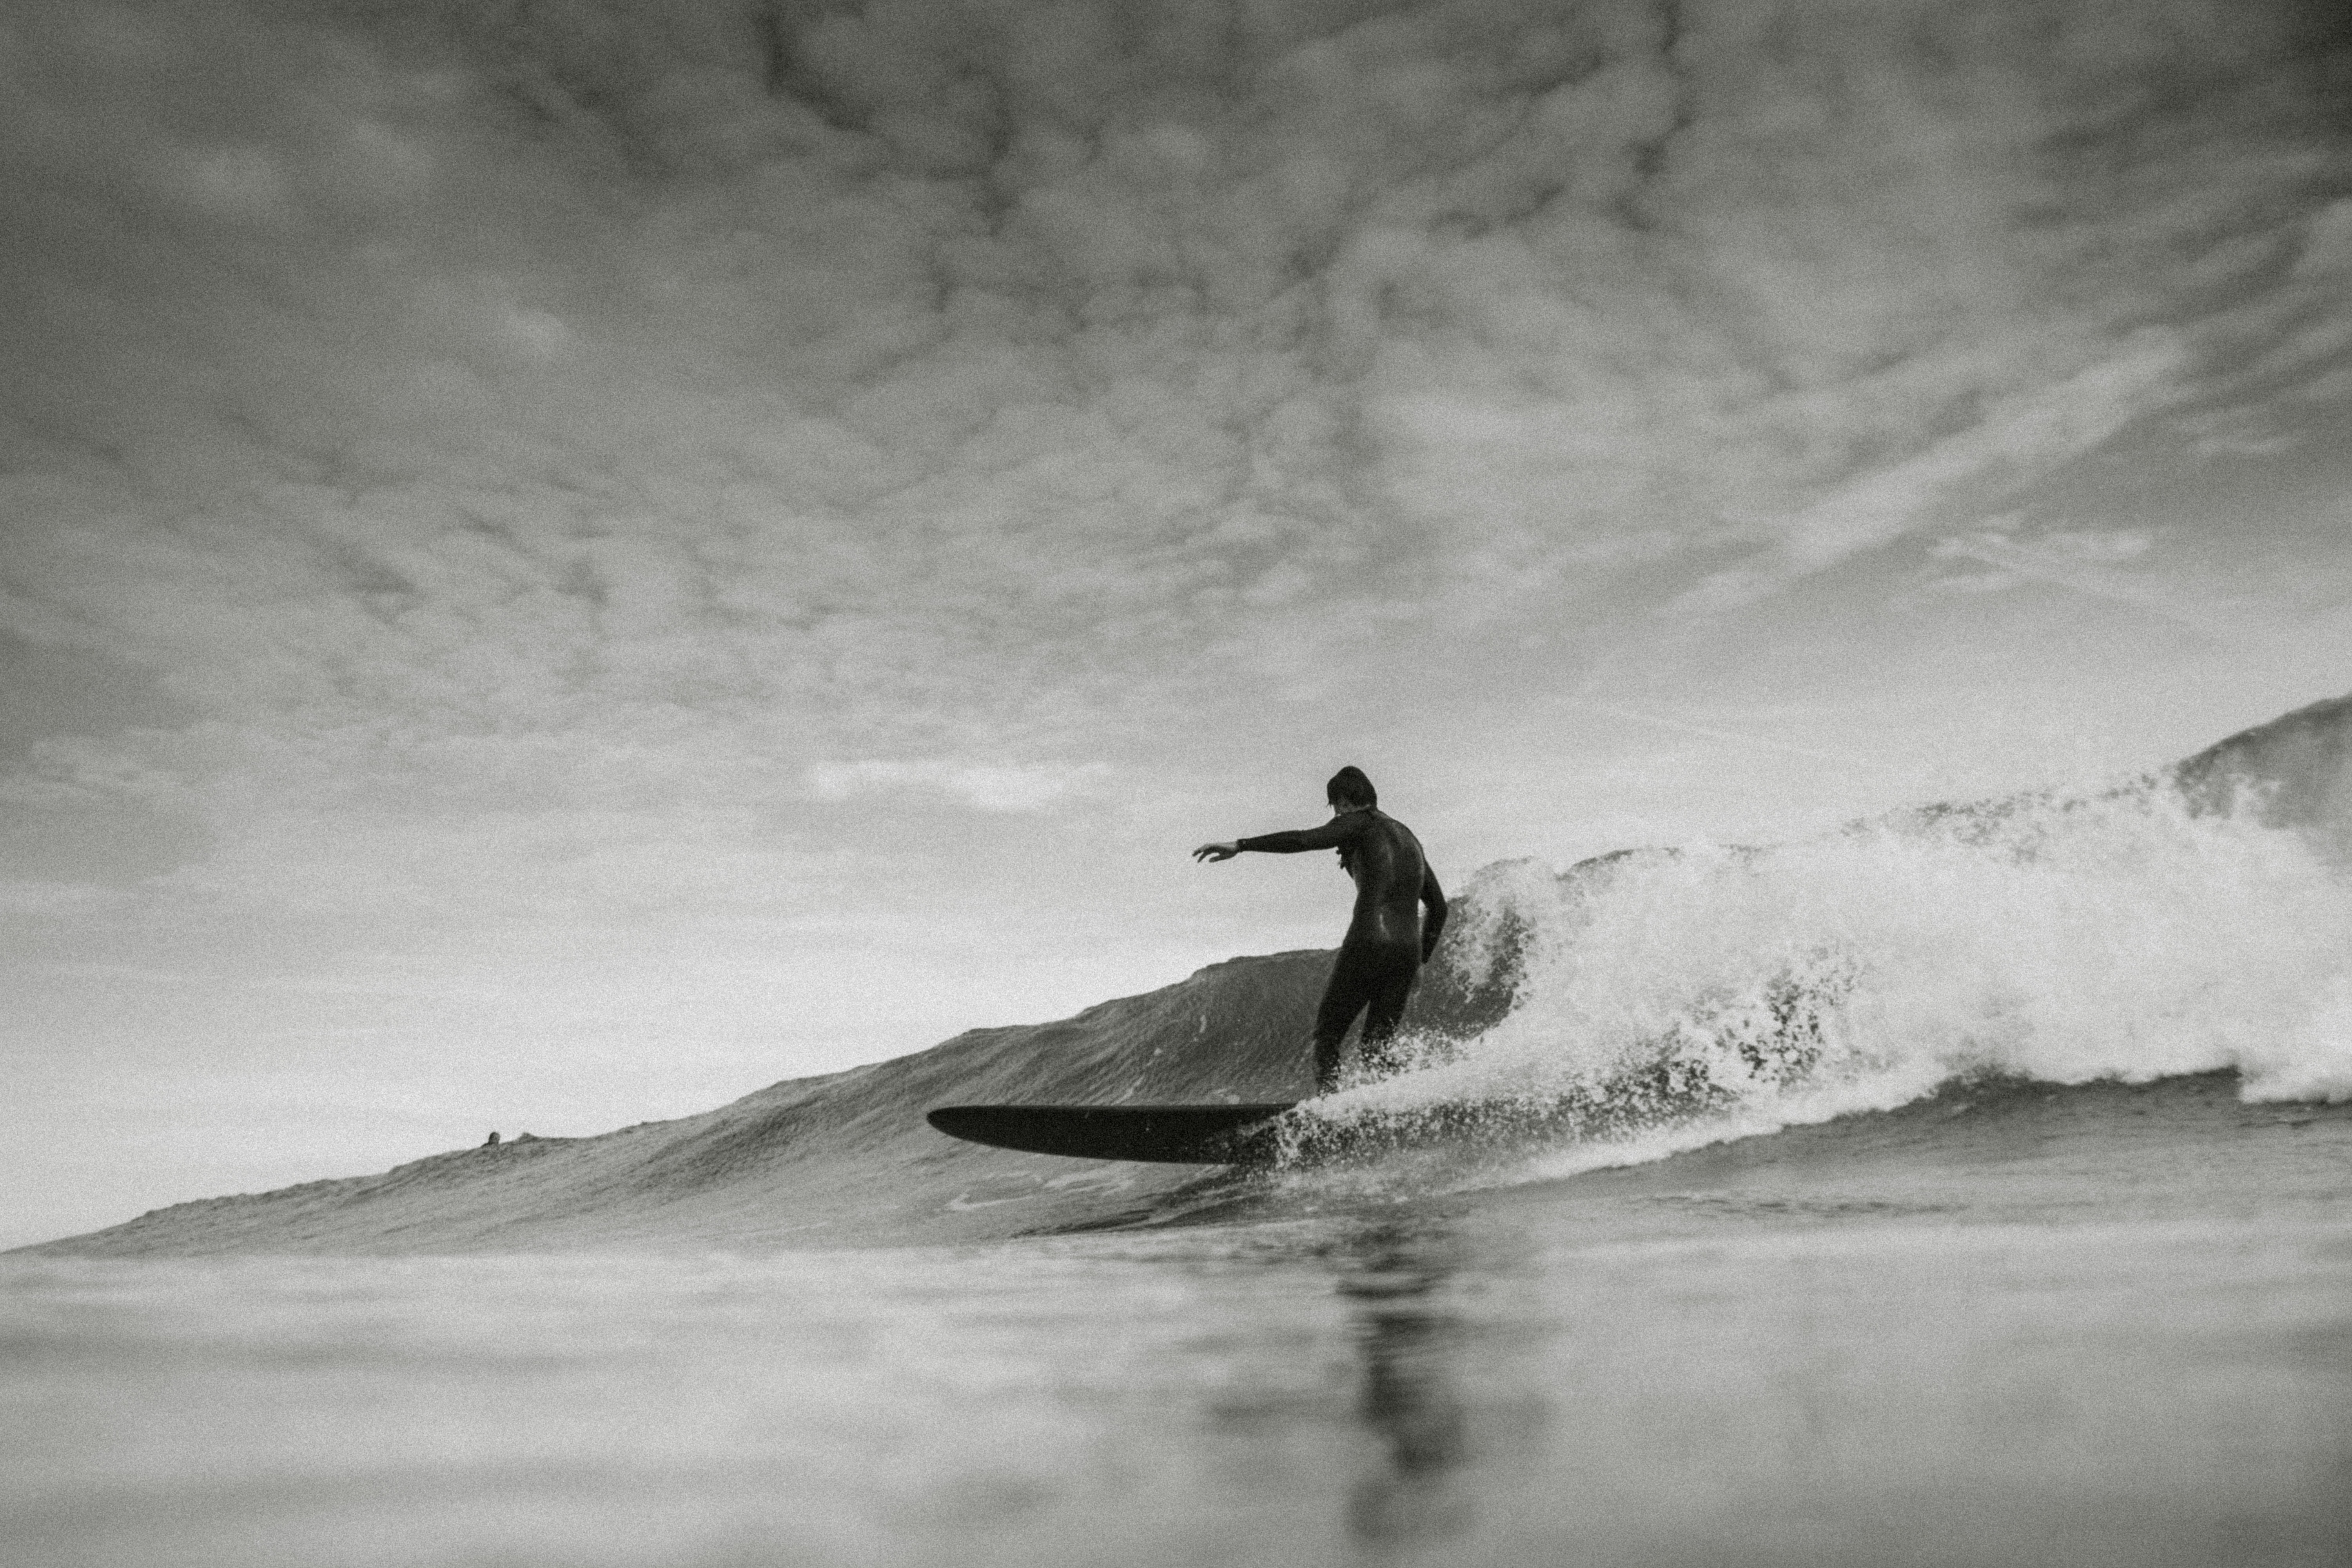 A black and white shot of a surfer riding a wave whilst pointing, at Saint-Nazaire